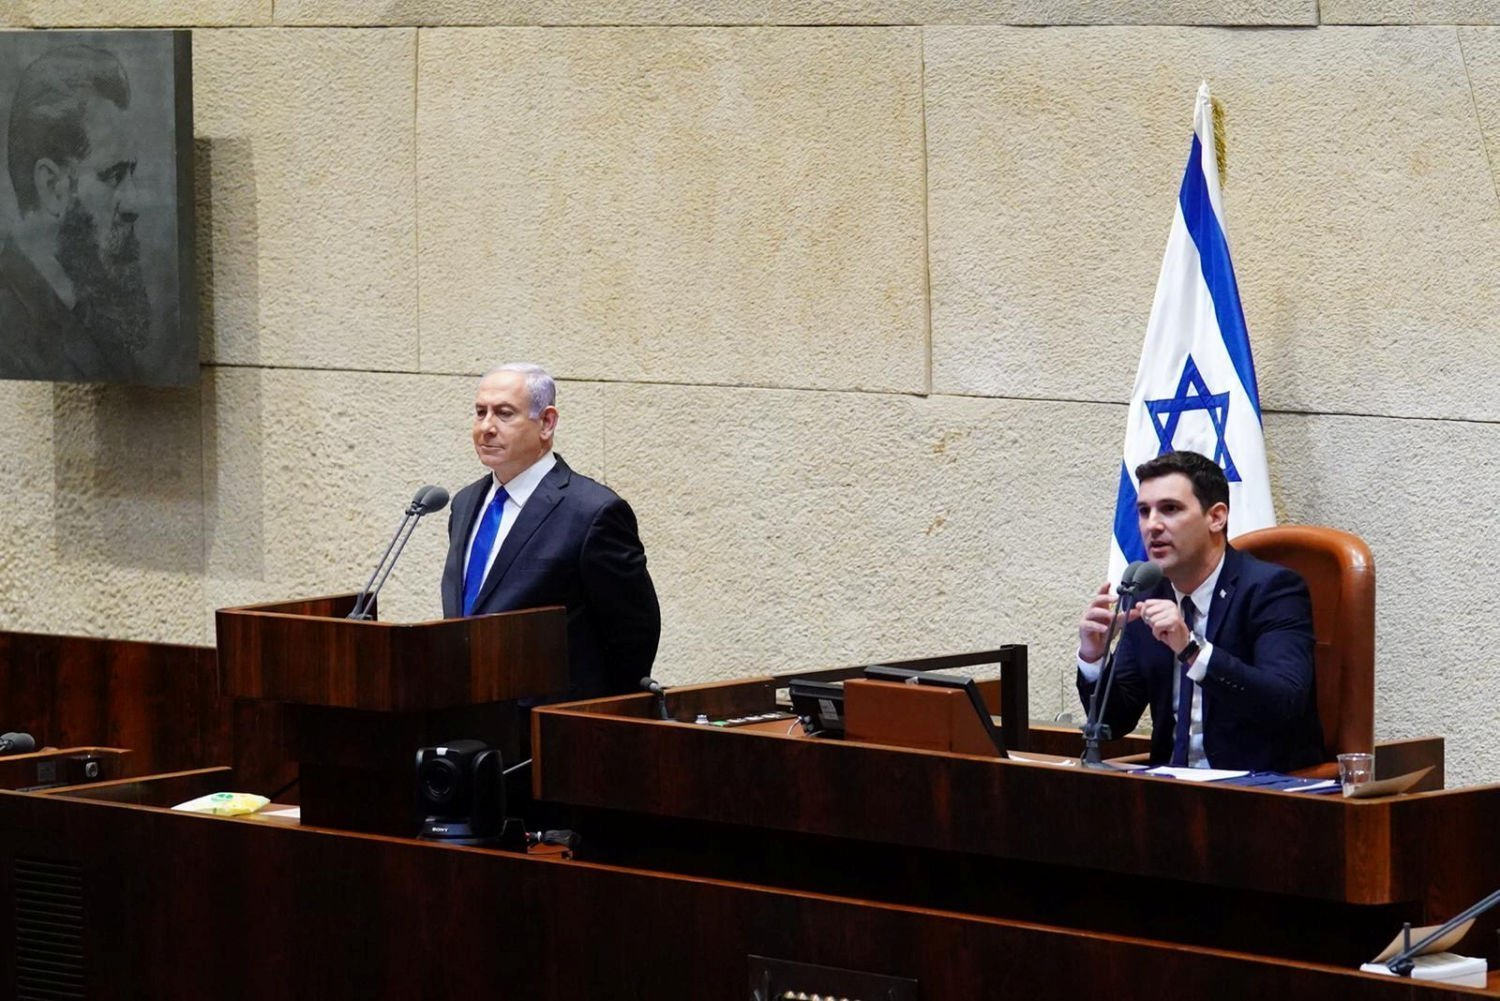 Israel S Netanyahu Presents New Unity Government To